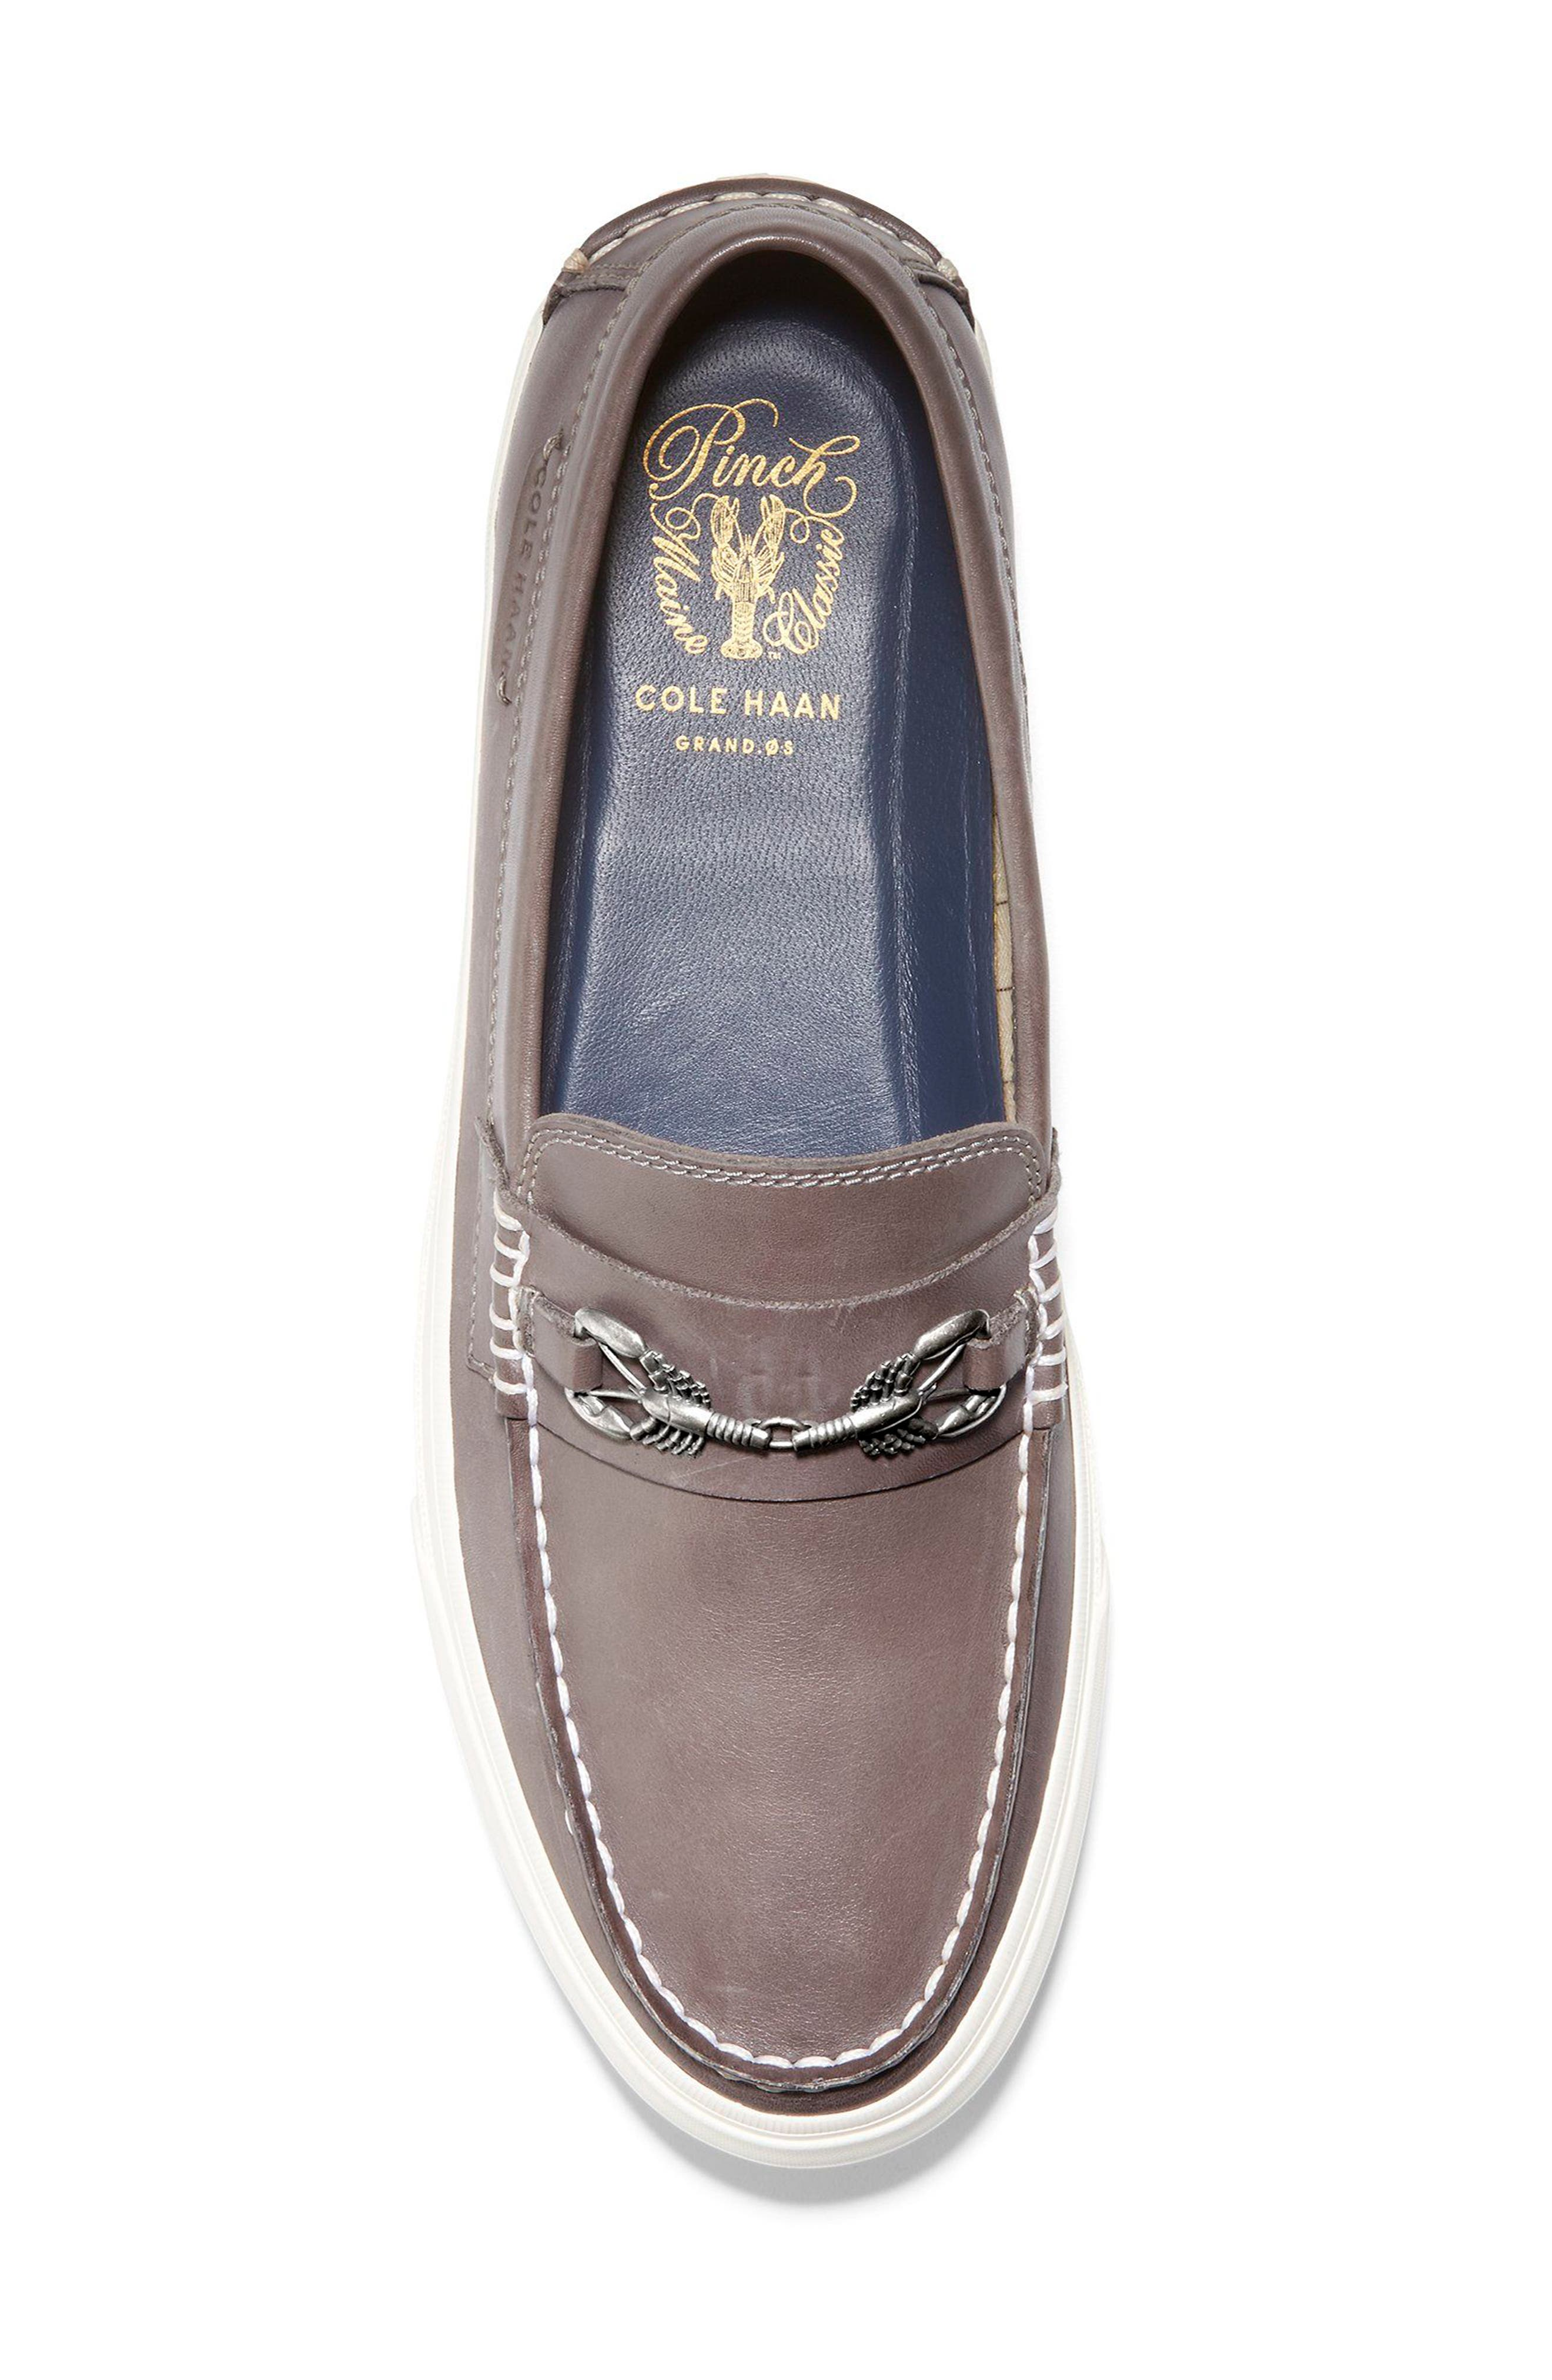 Pinch Weekend Loafer,                             Alternate thumbnail 4, color,                             Stormcloud Handstain